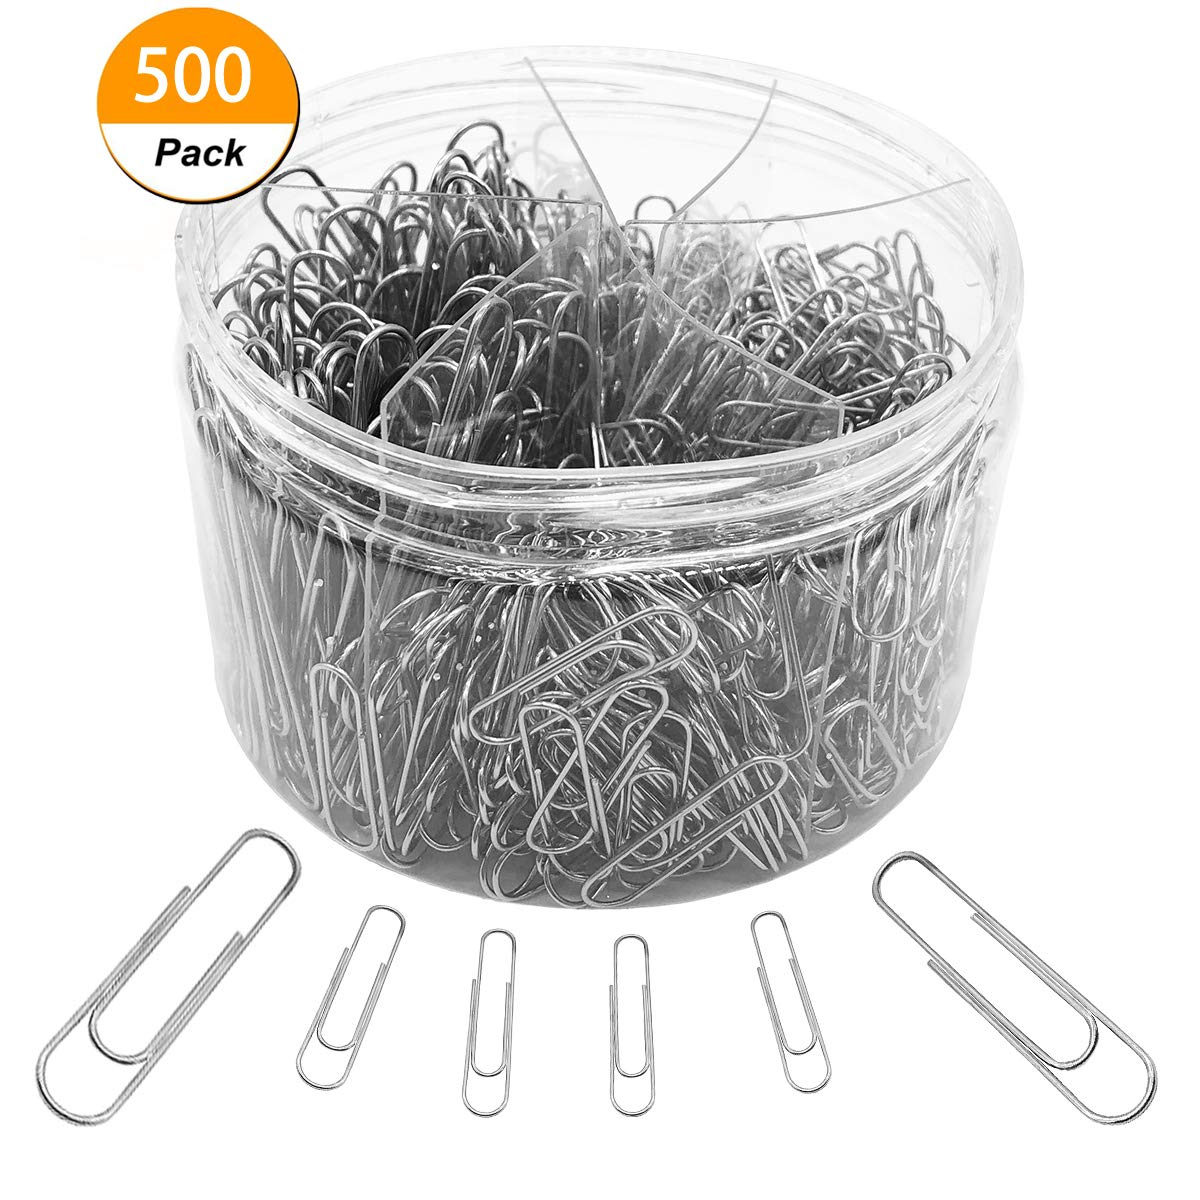 Paper Clips, 500 Pieces Sliver Paperclips, Medium 28mm and Jumbo Sizes 50mm, Office Clips for School Personal Document Organizing Professional Work (500 Pcs Sliver)